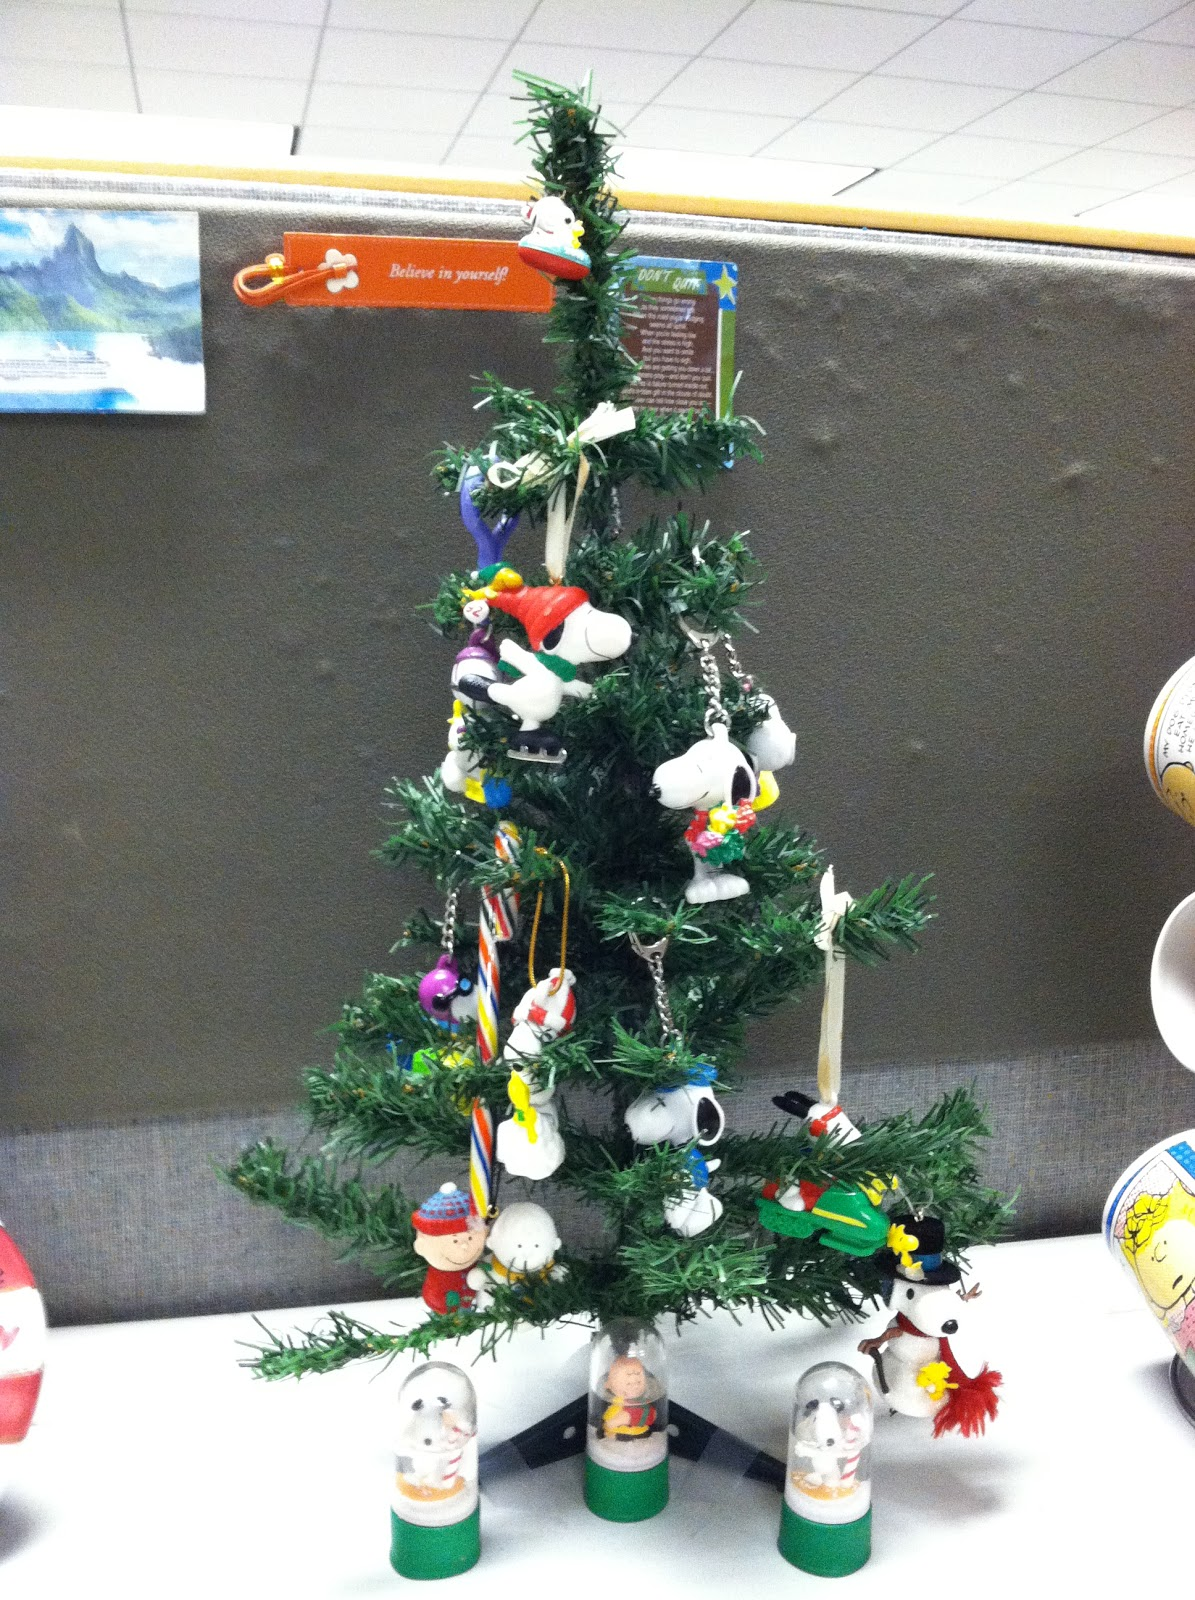 christmas tree snoopy christmas tree made with snoopy ornaments and snoopy key chains snoopy snowman charlie brown that plays the linus and lucy - Charlie Brown And Snoopy Christmas Decorations